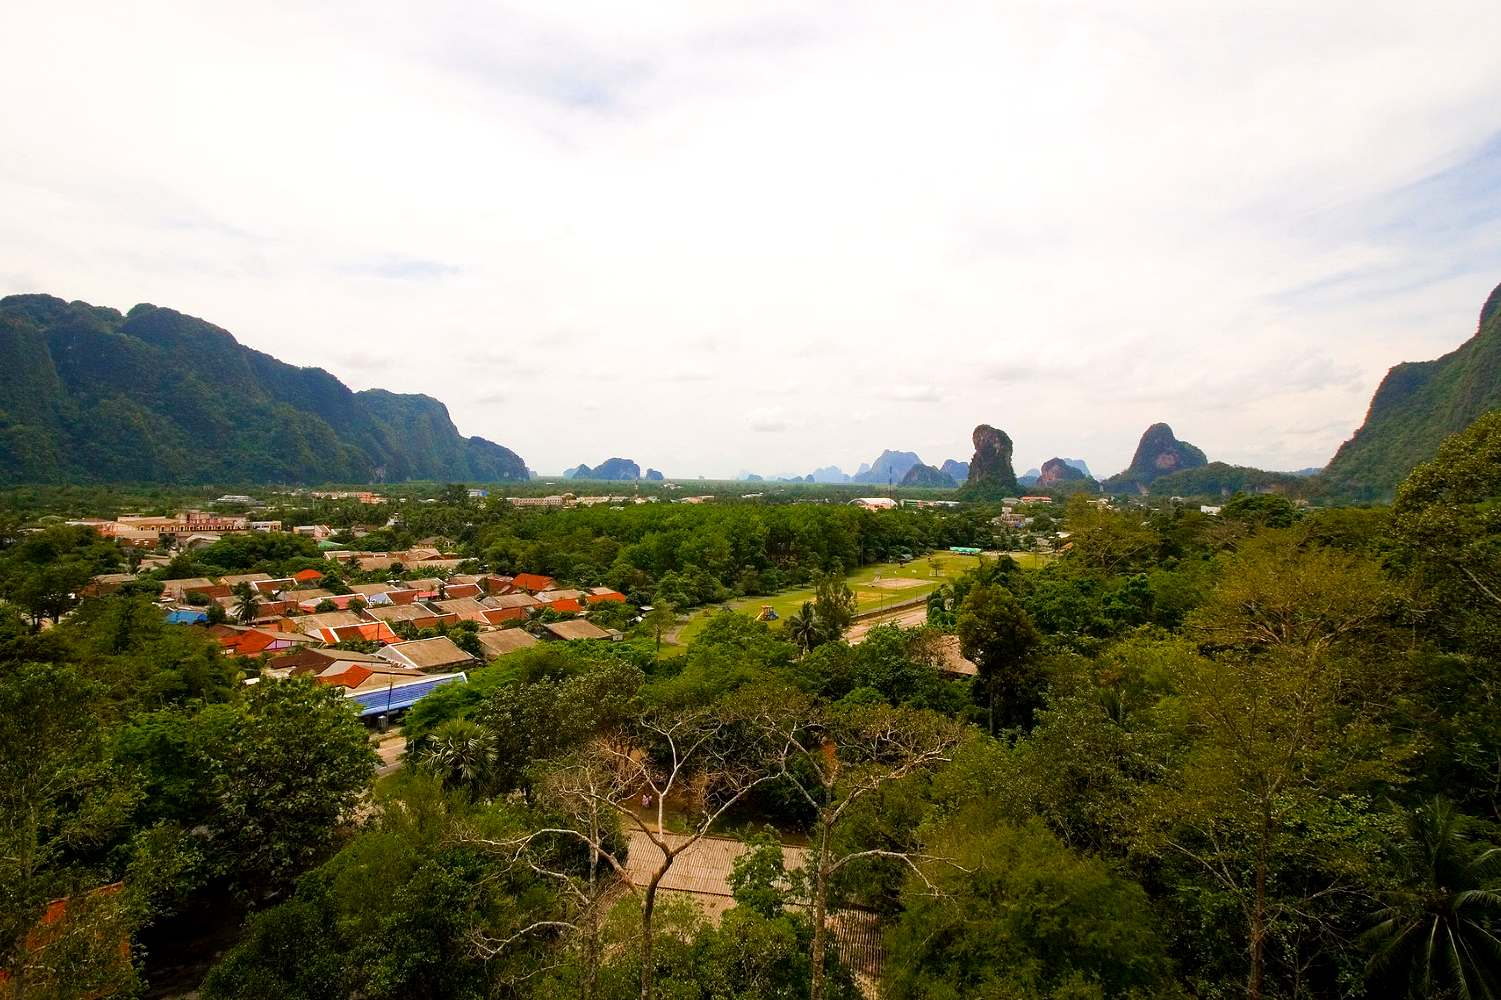 Phang Nga Town sandwiched between rocks seen from above.